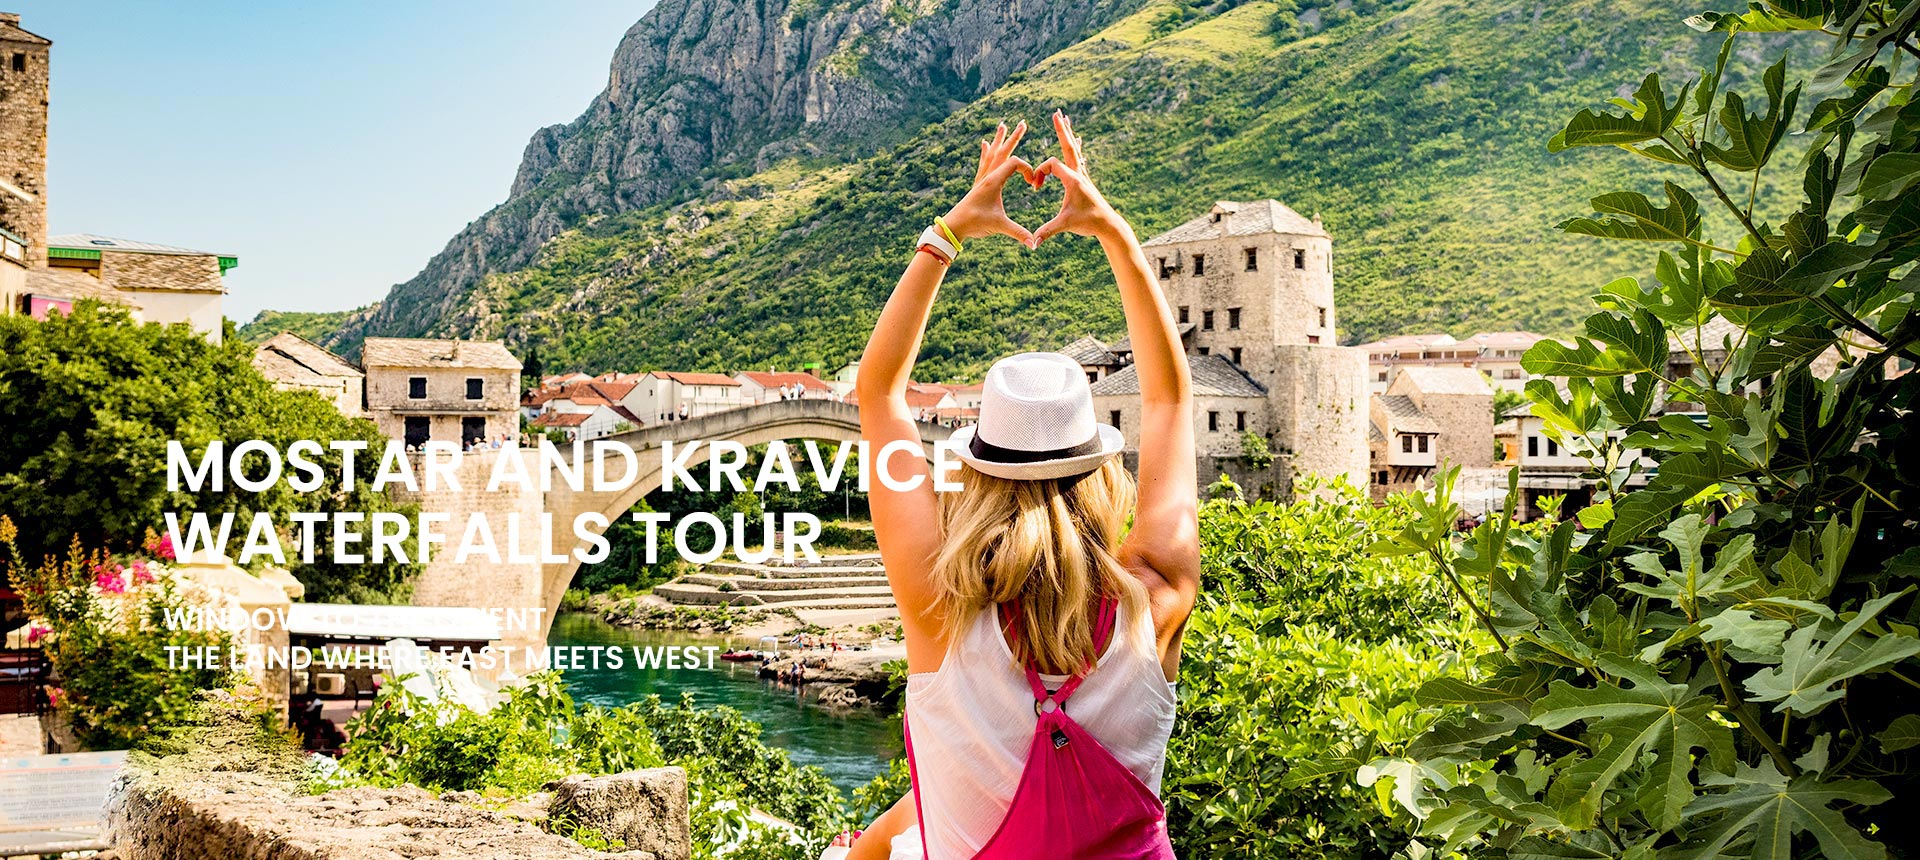 Private tour to Mostar and Kravice